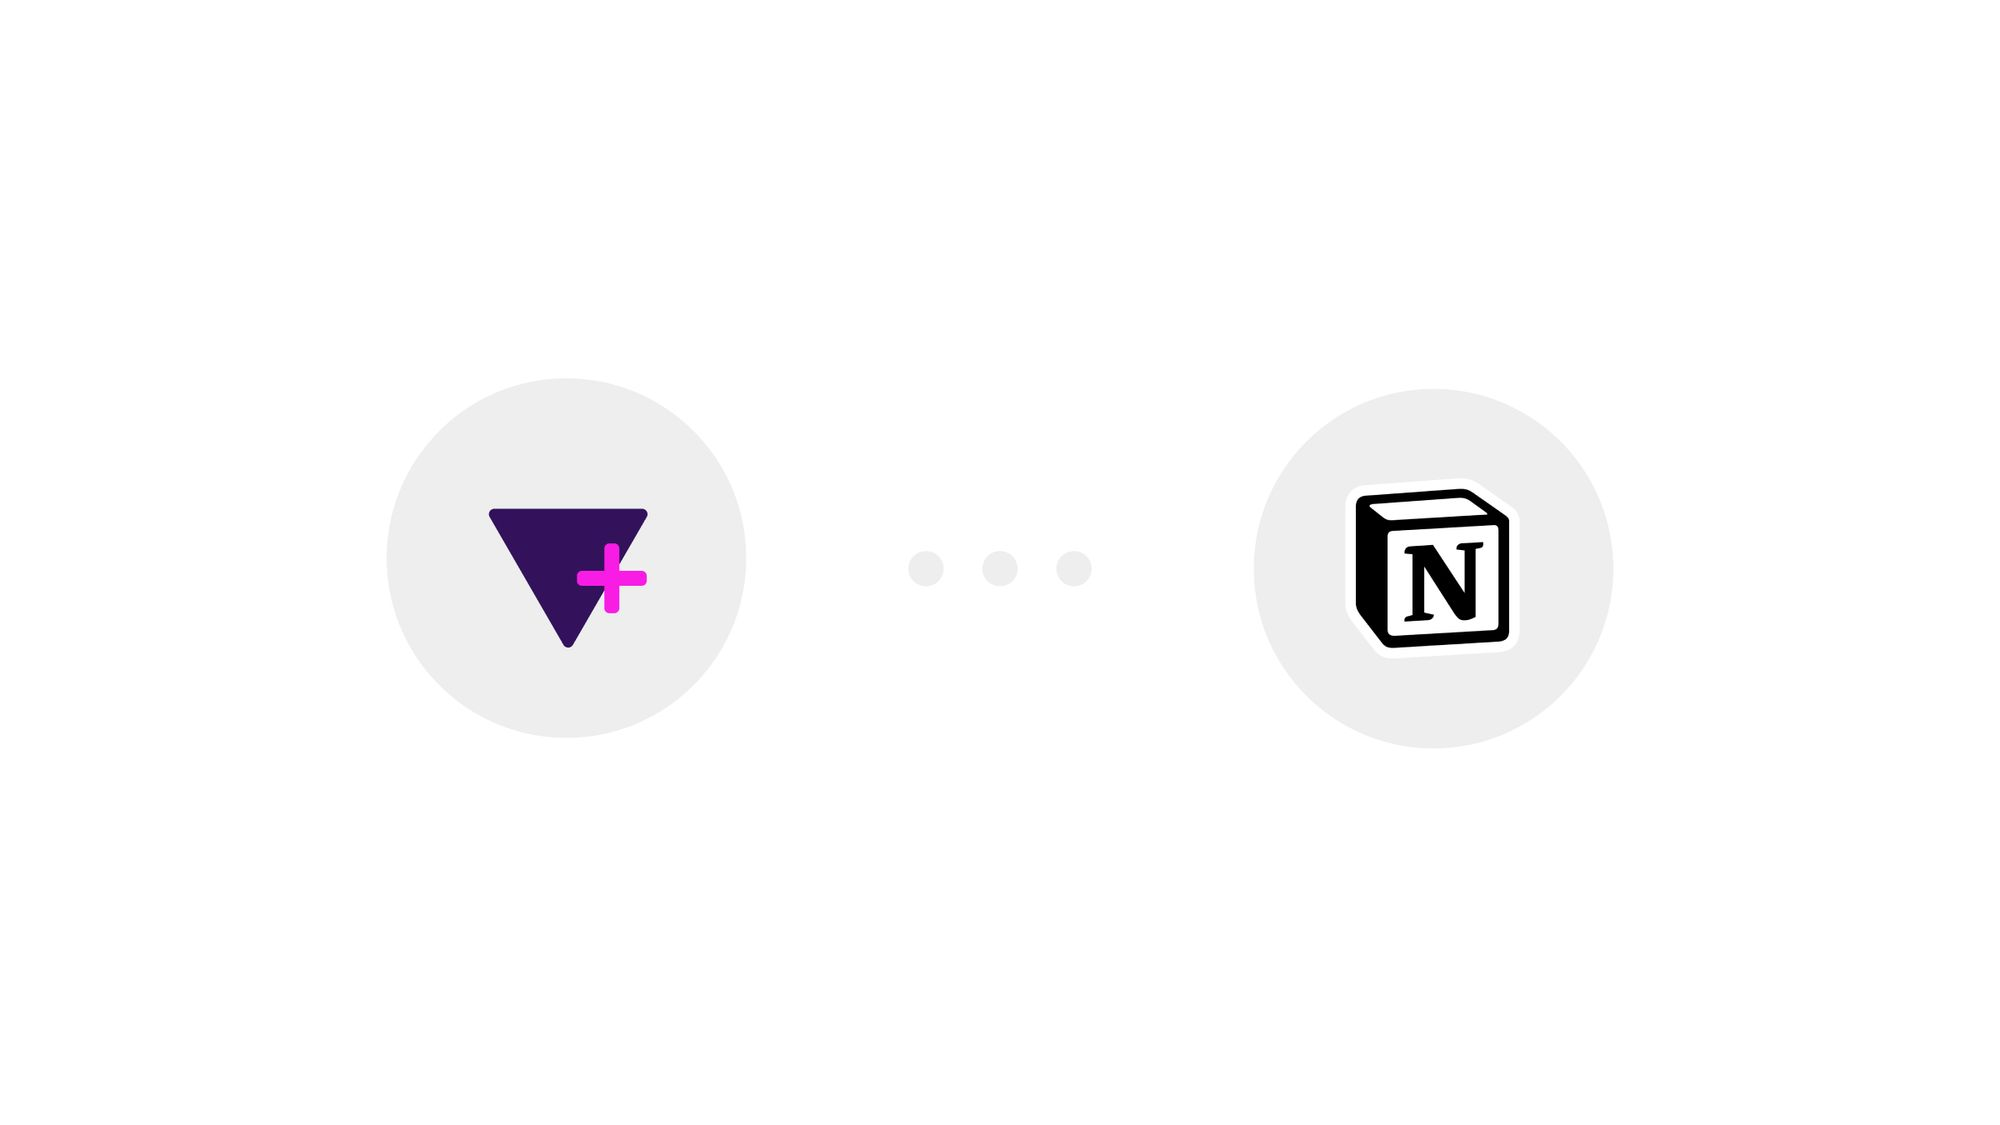 Tally forms for Notion